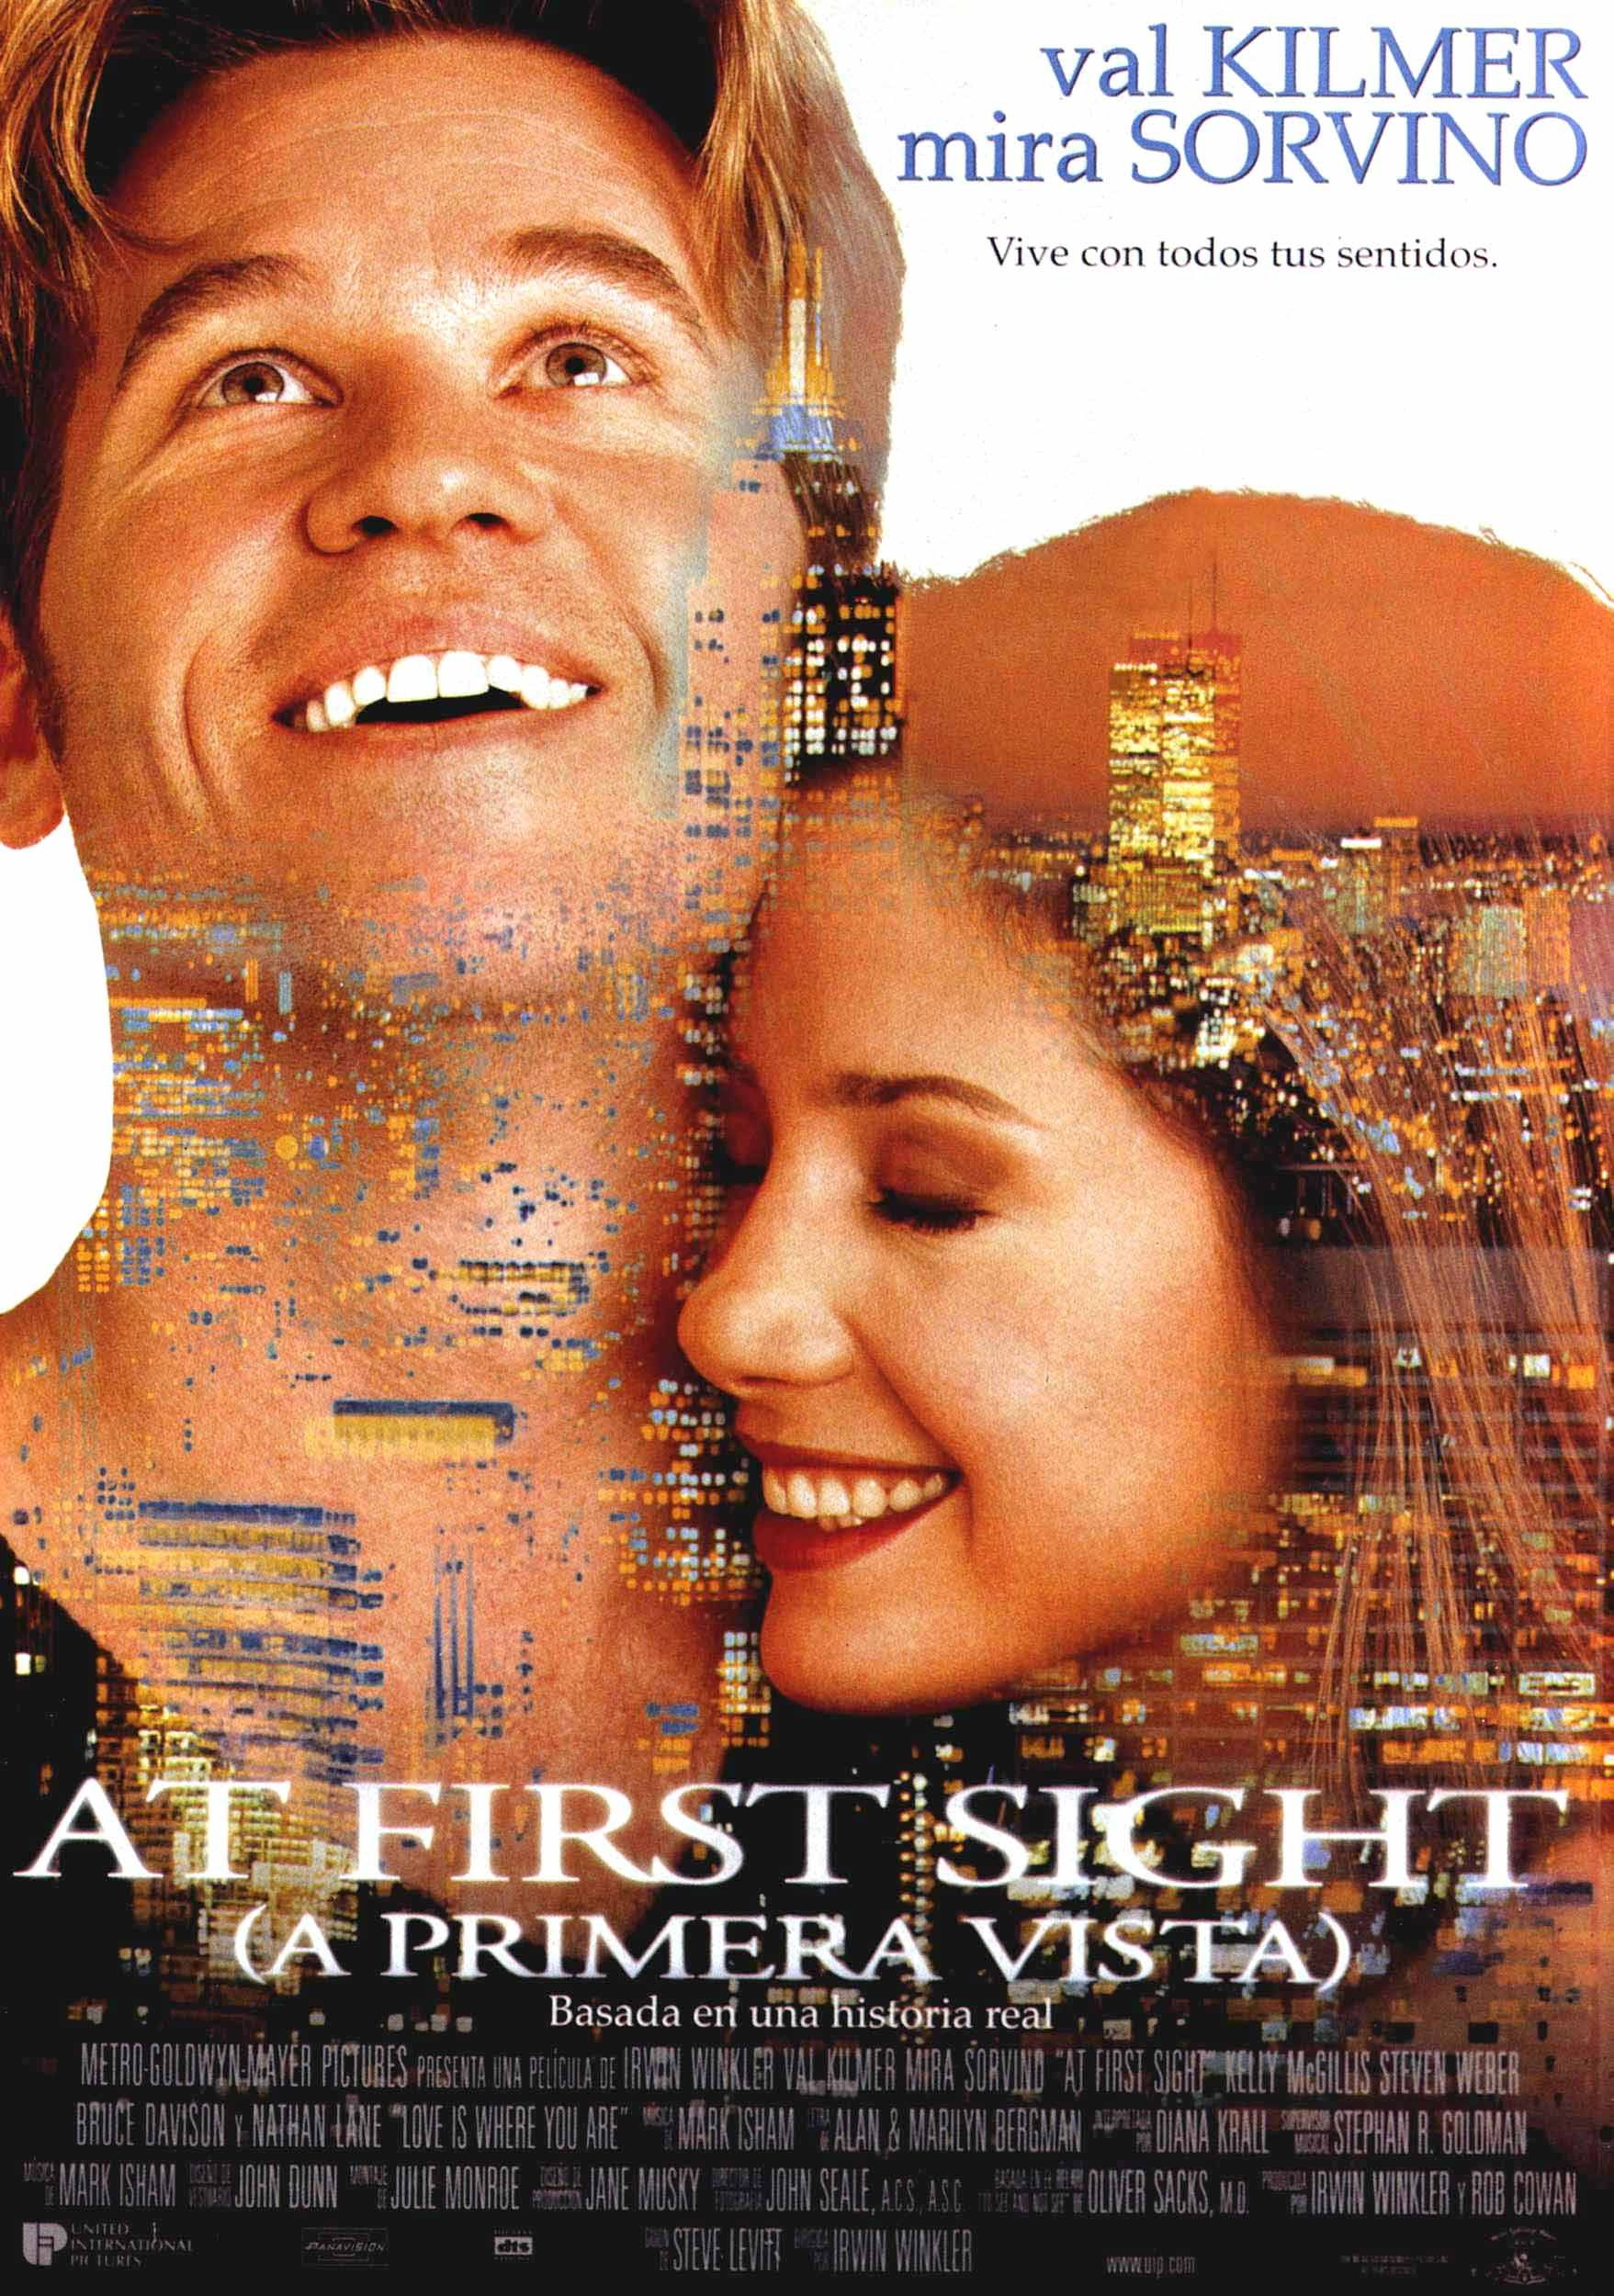 1999 - A primera vista - At first sight - tt0132512